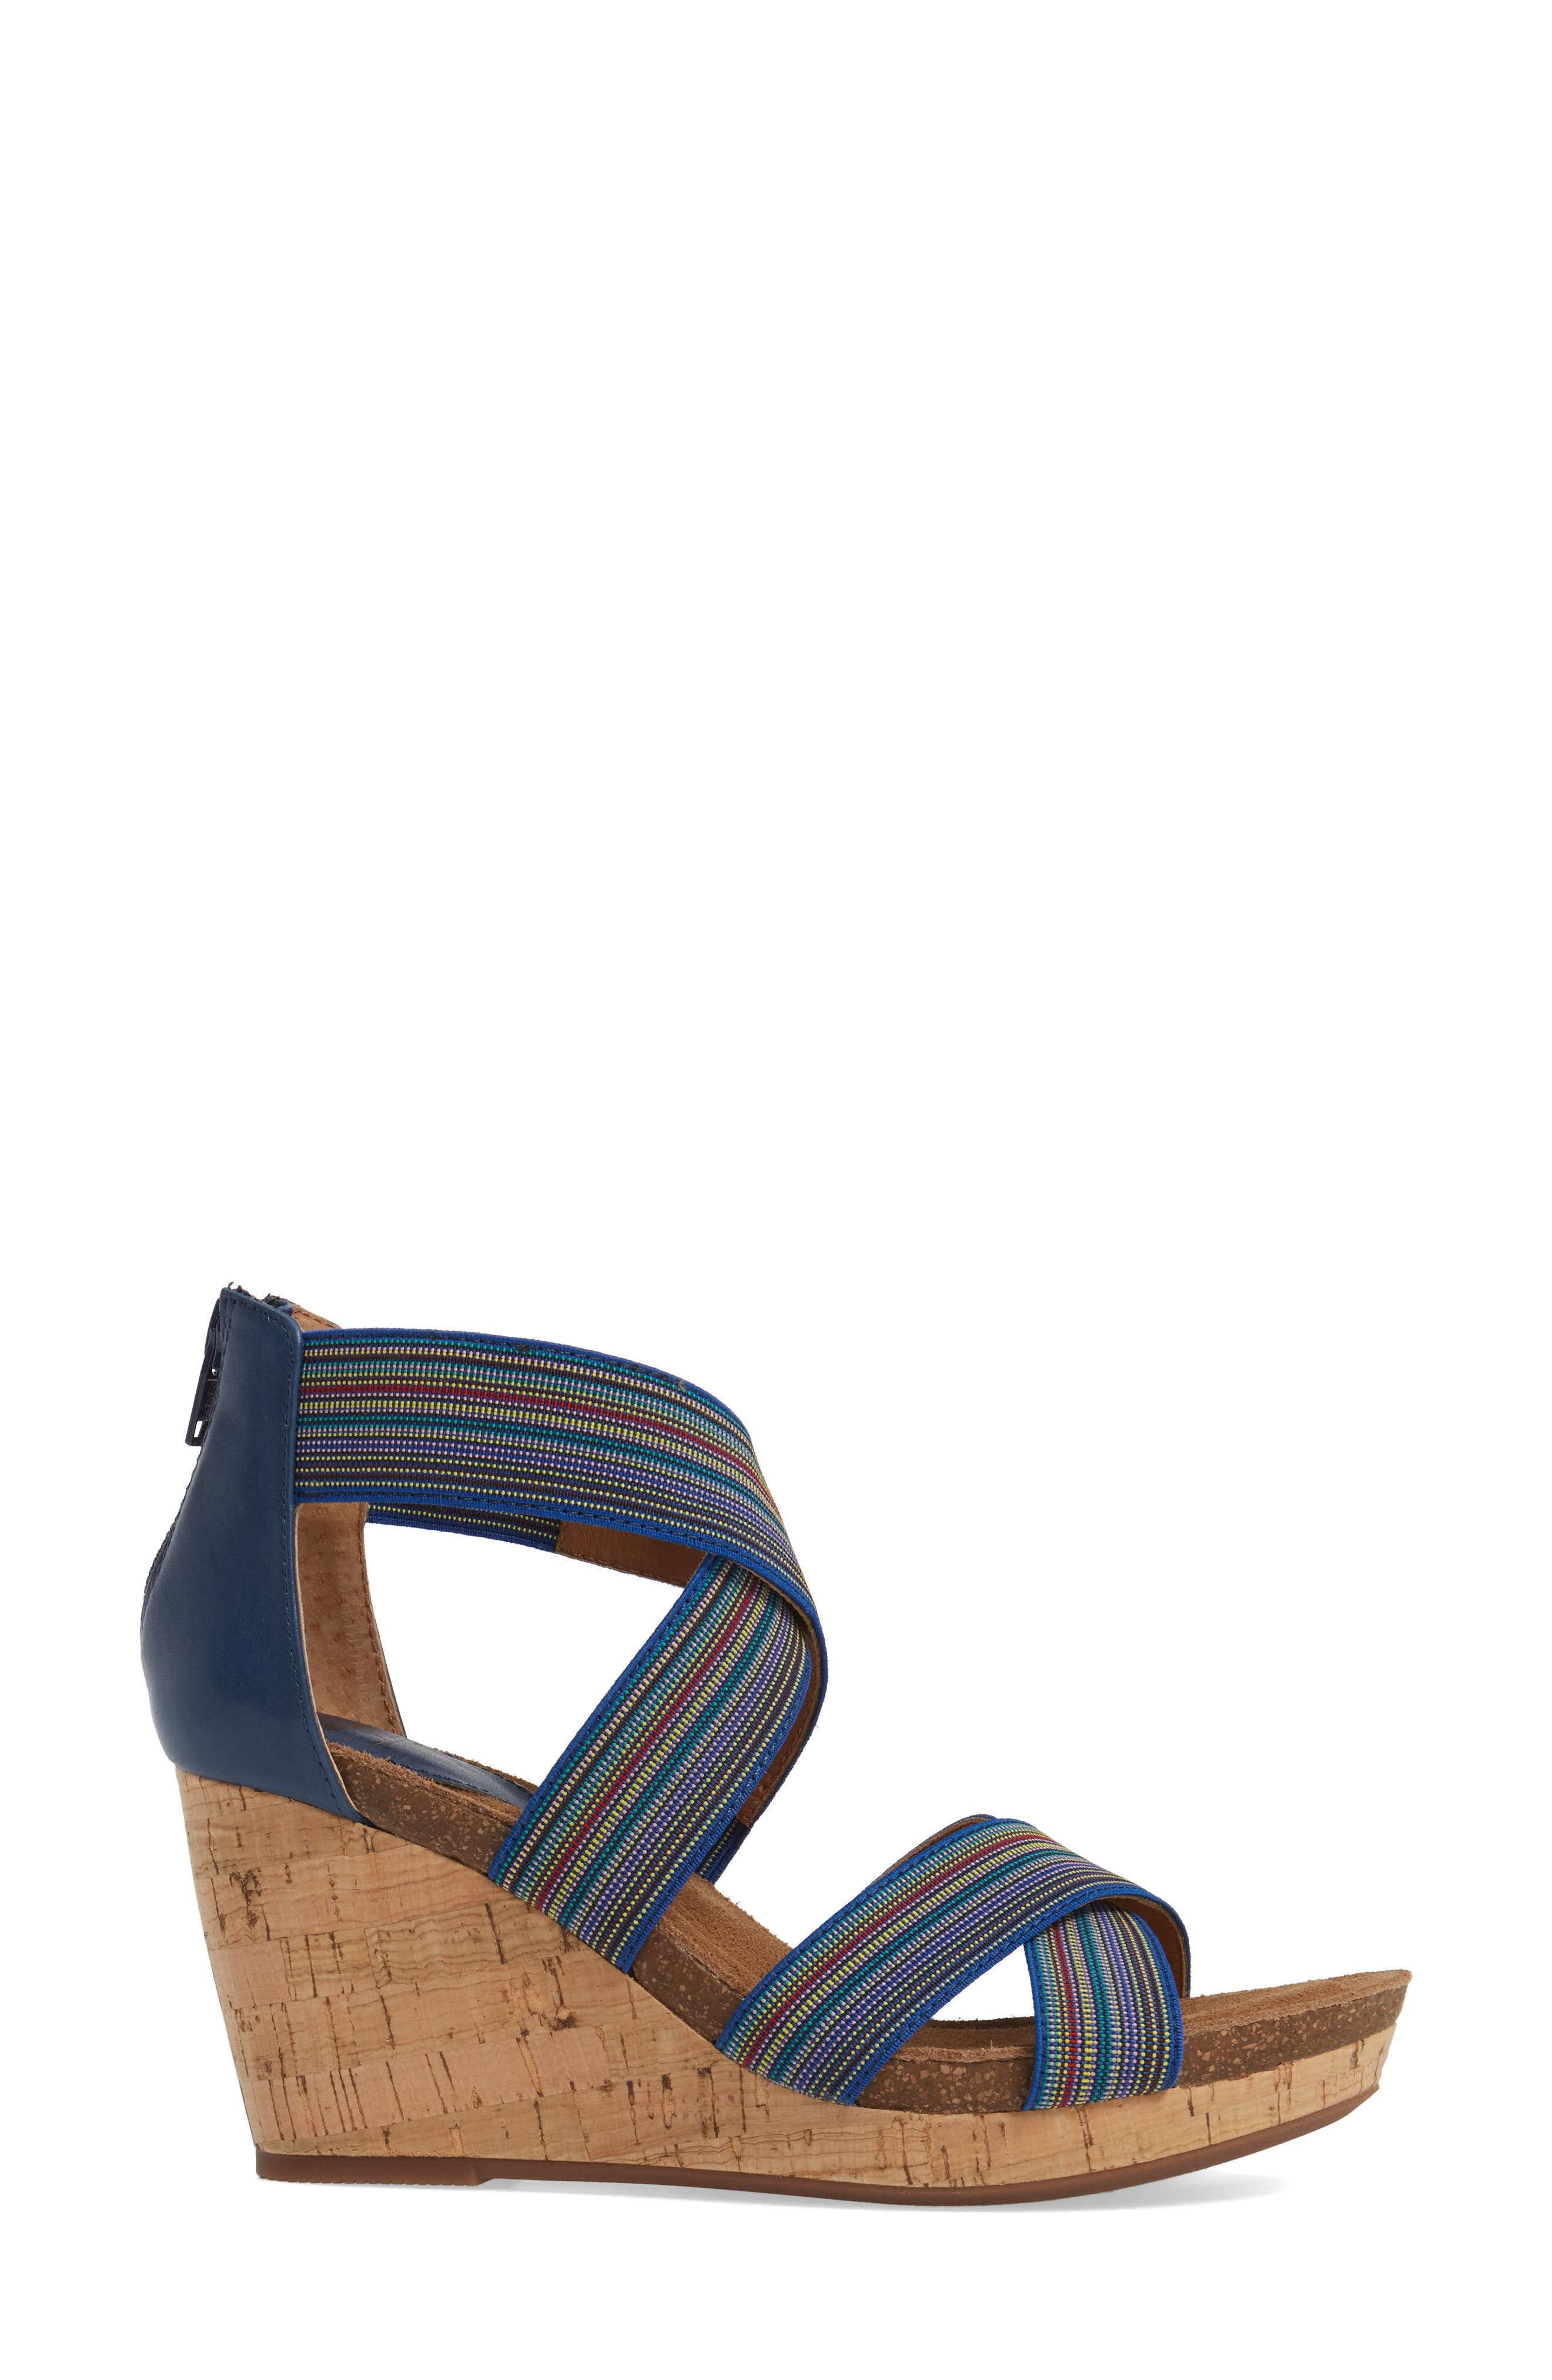 Cary Cross Strap Wedge Sandal,                             Alternate thumbnail 8, color,